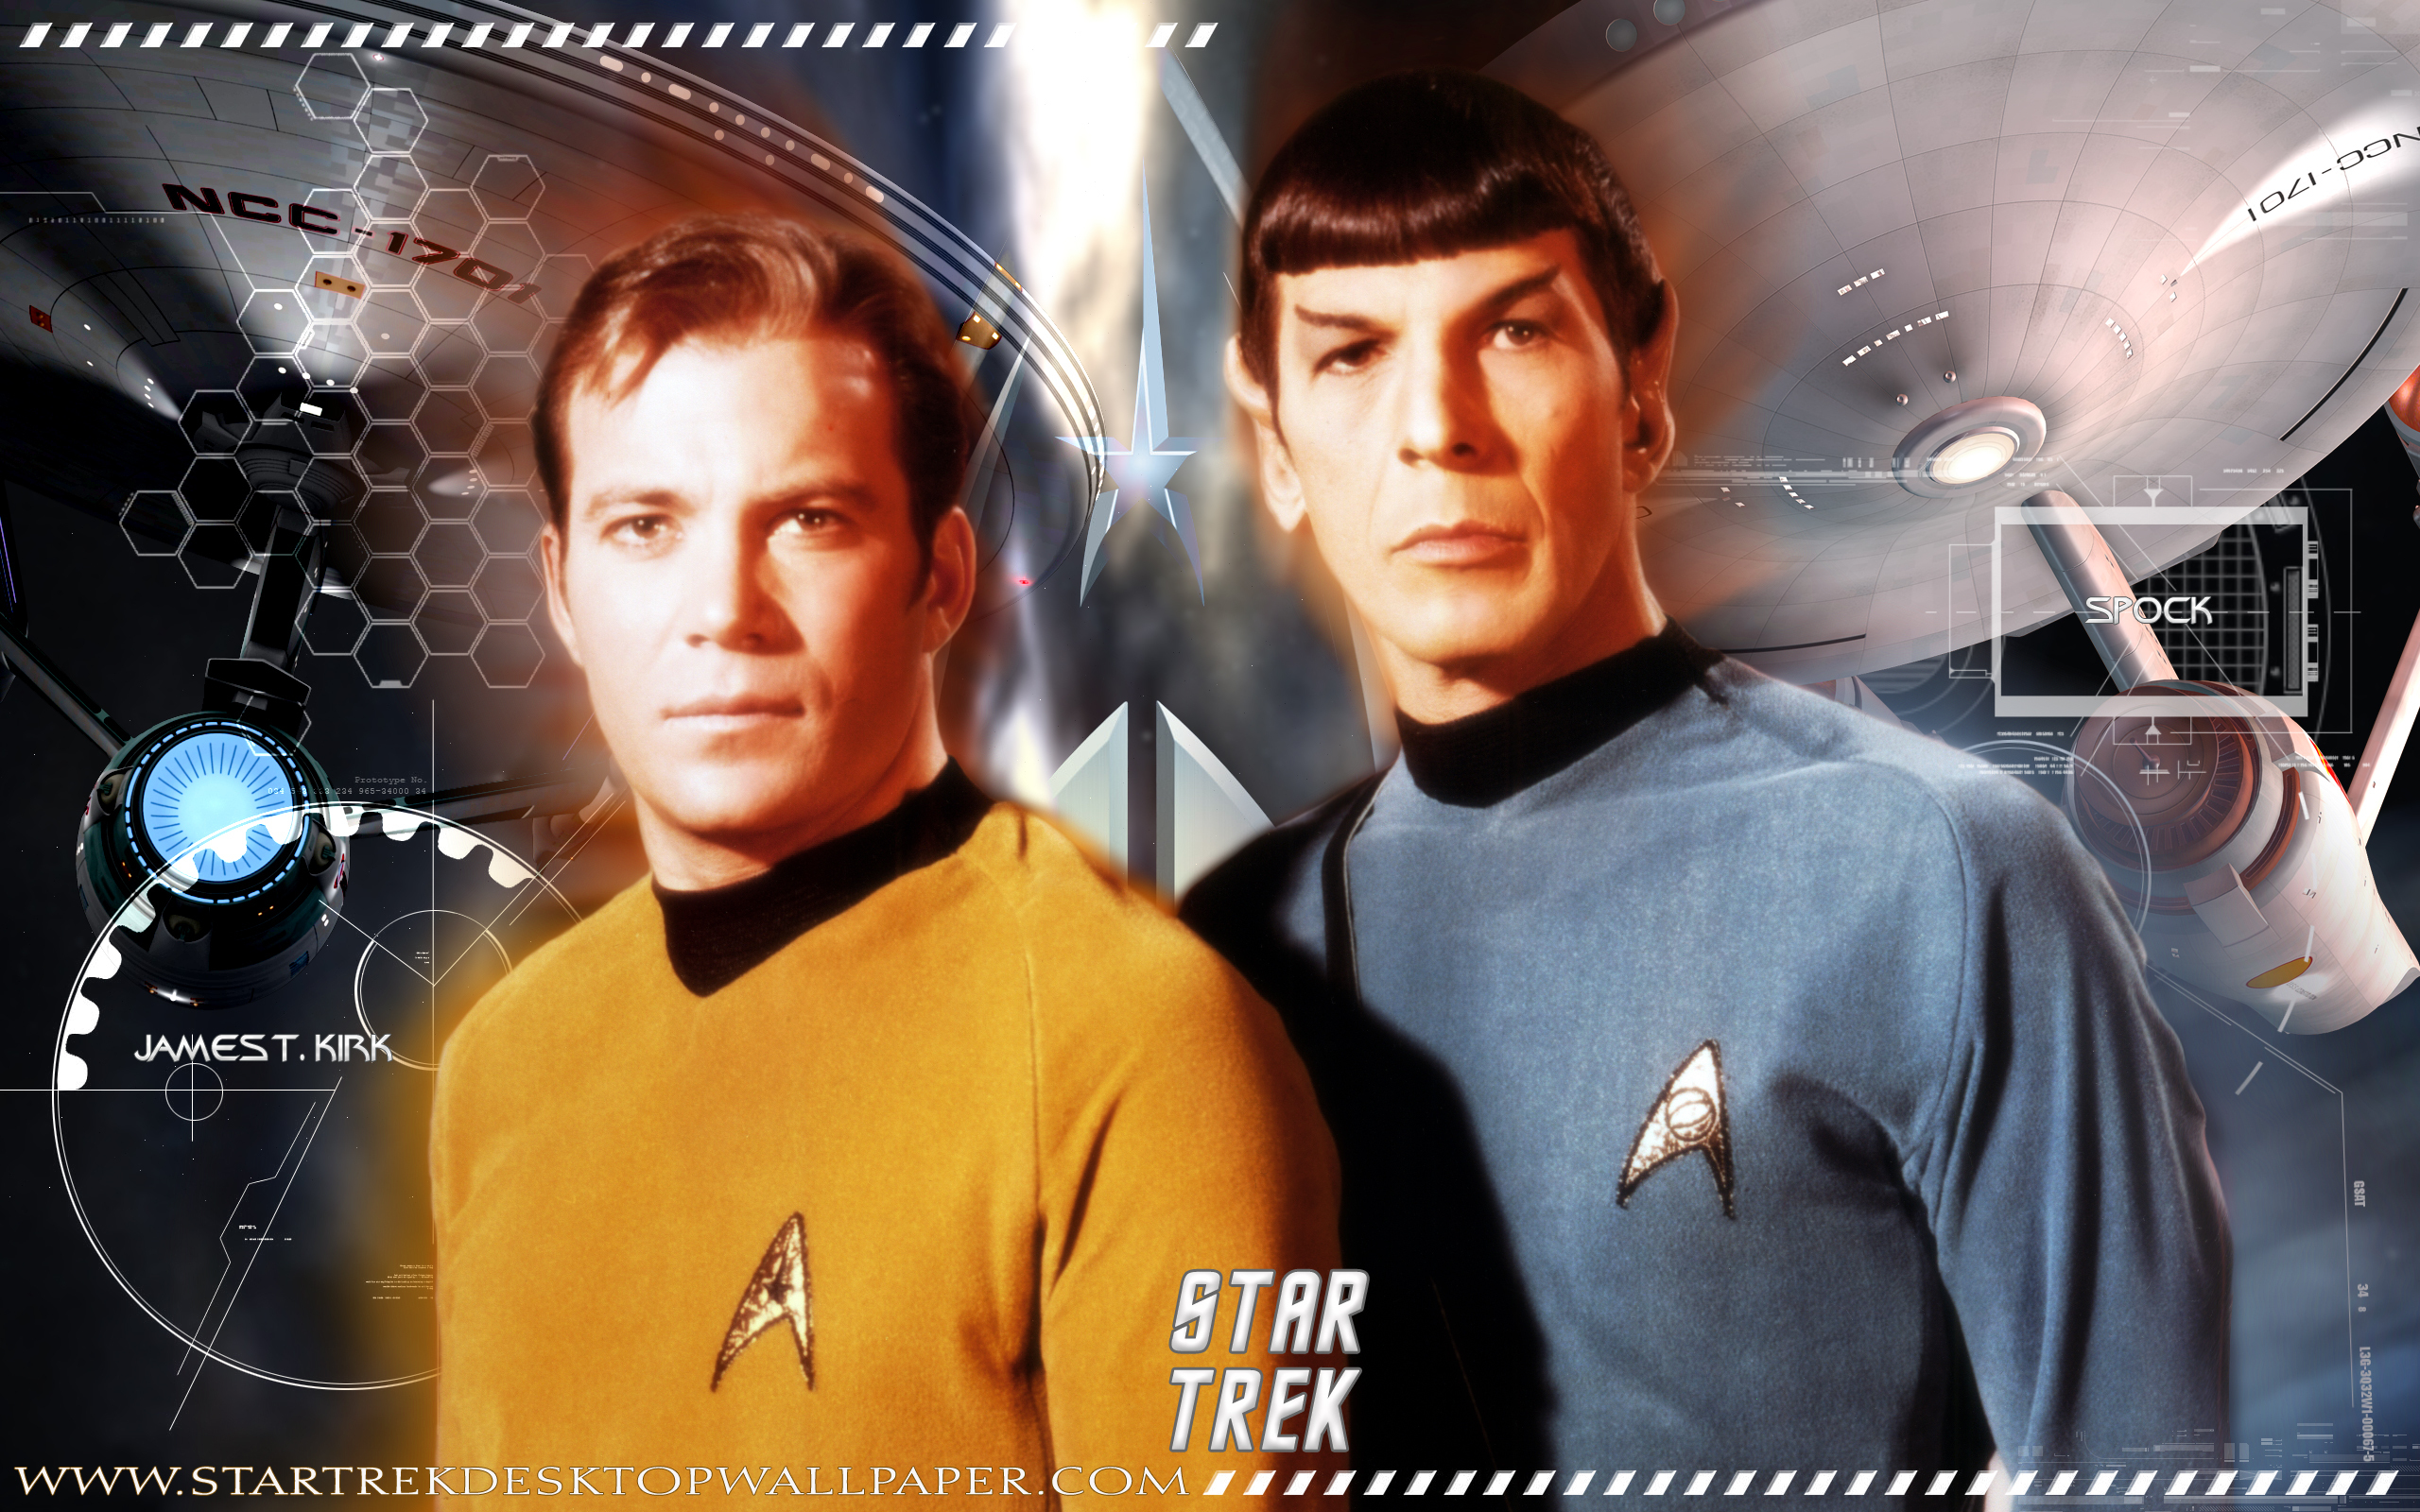 <b>Star Trek wallpapers wallpaper</b> images TV shows sci-fi pictures scifi